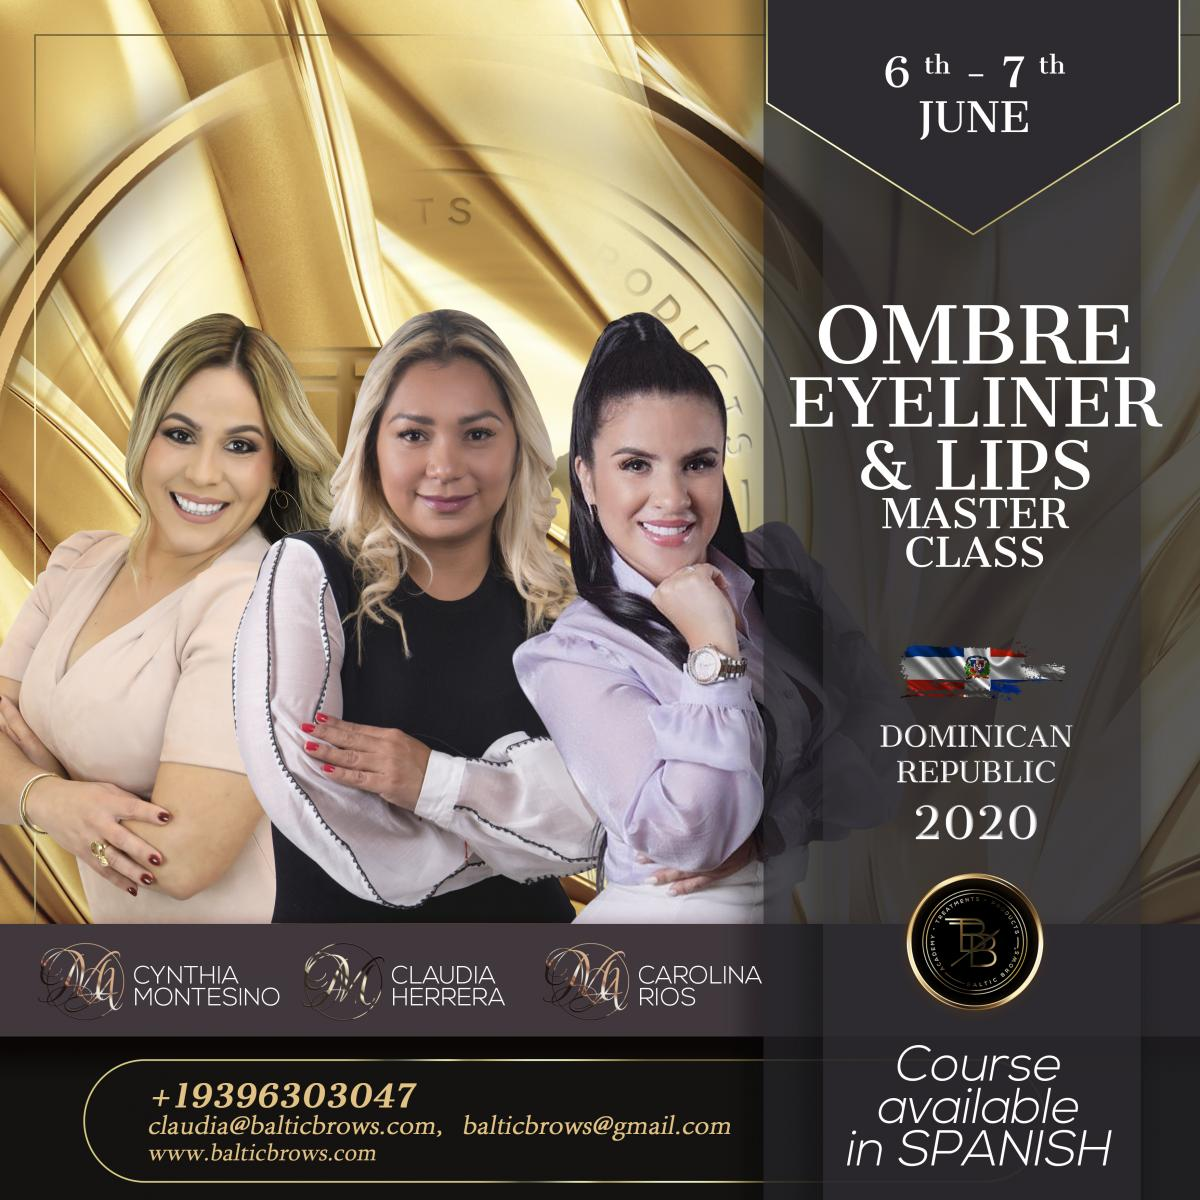 Ombre eyeliner and lips masterclass